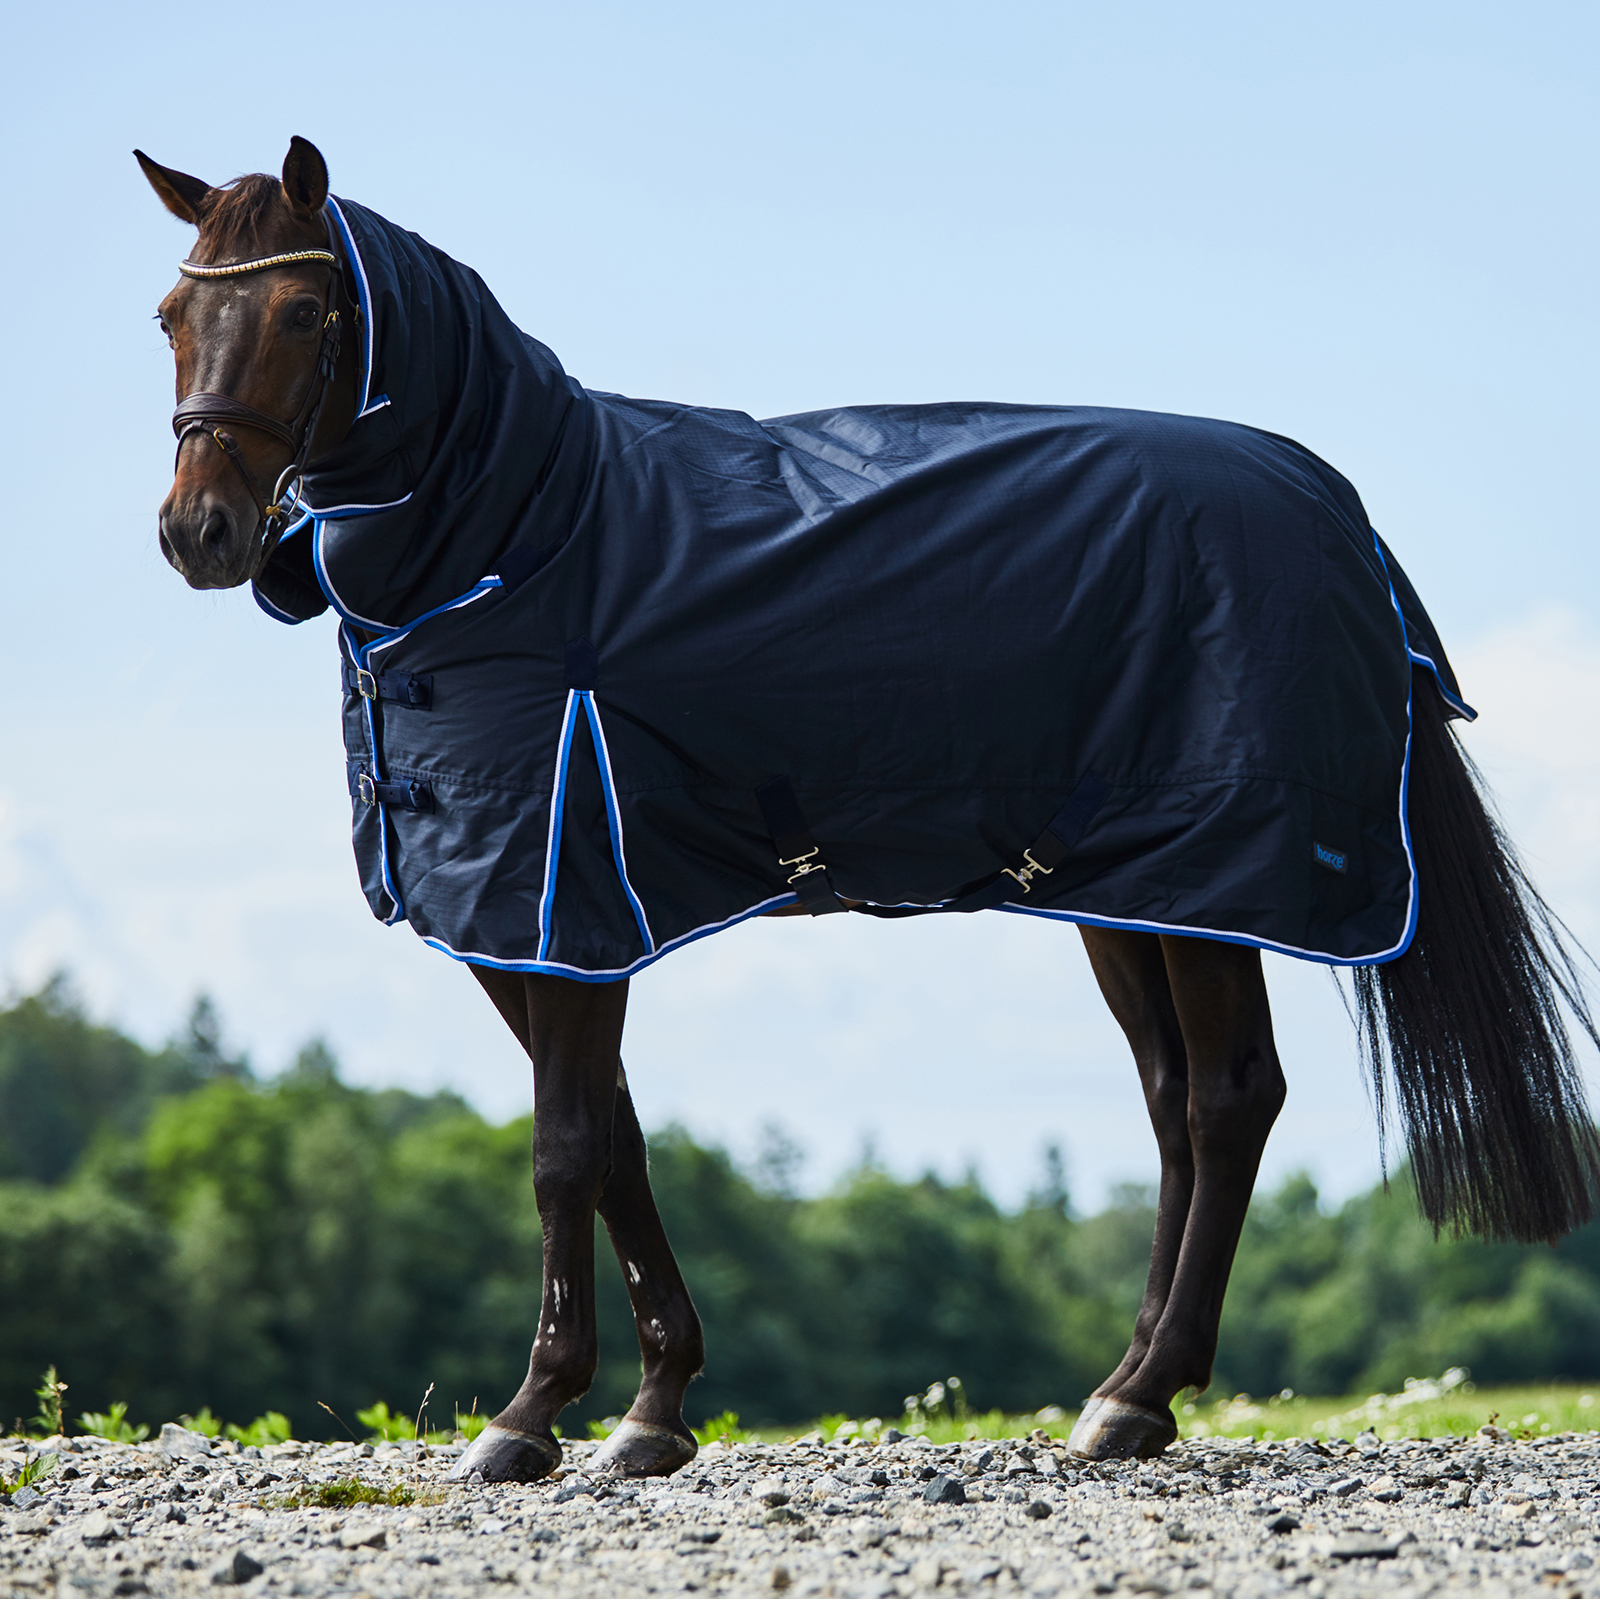 Buy Horse Equipment Online Horse Equipment Riding Equipment Accessories Horze